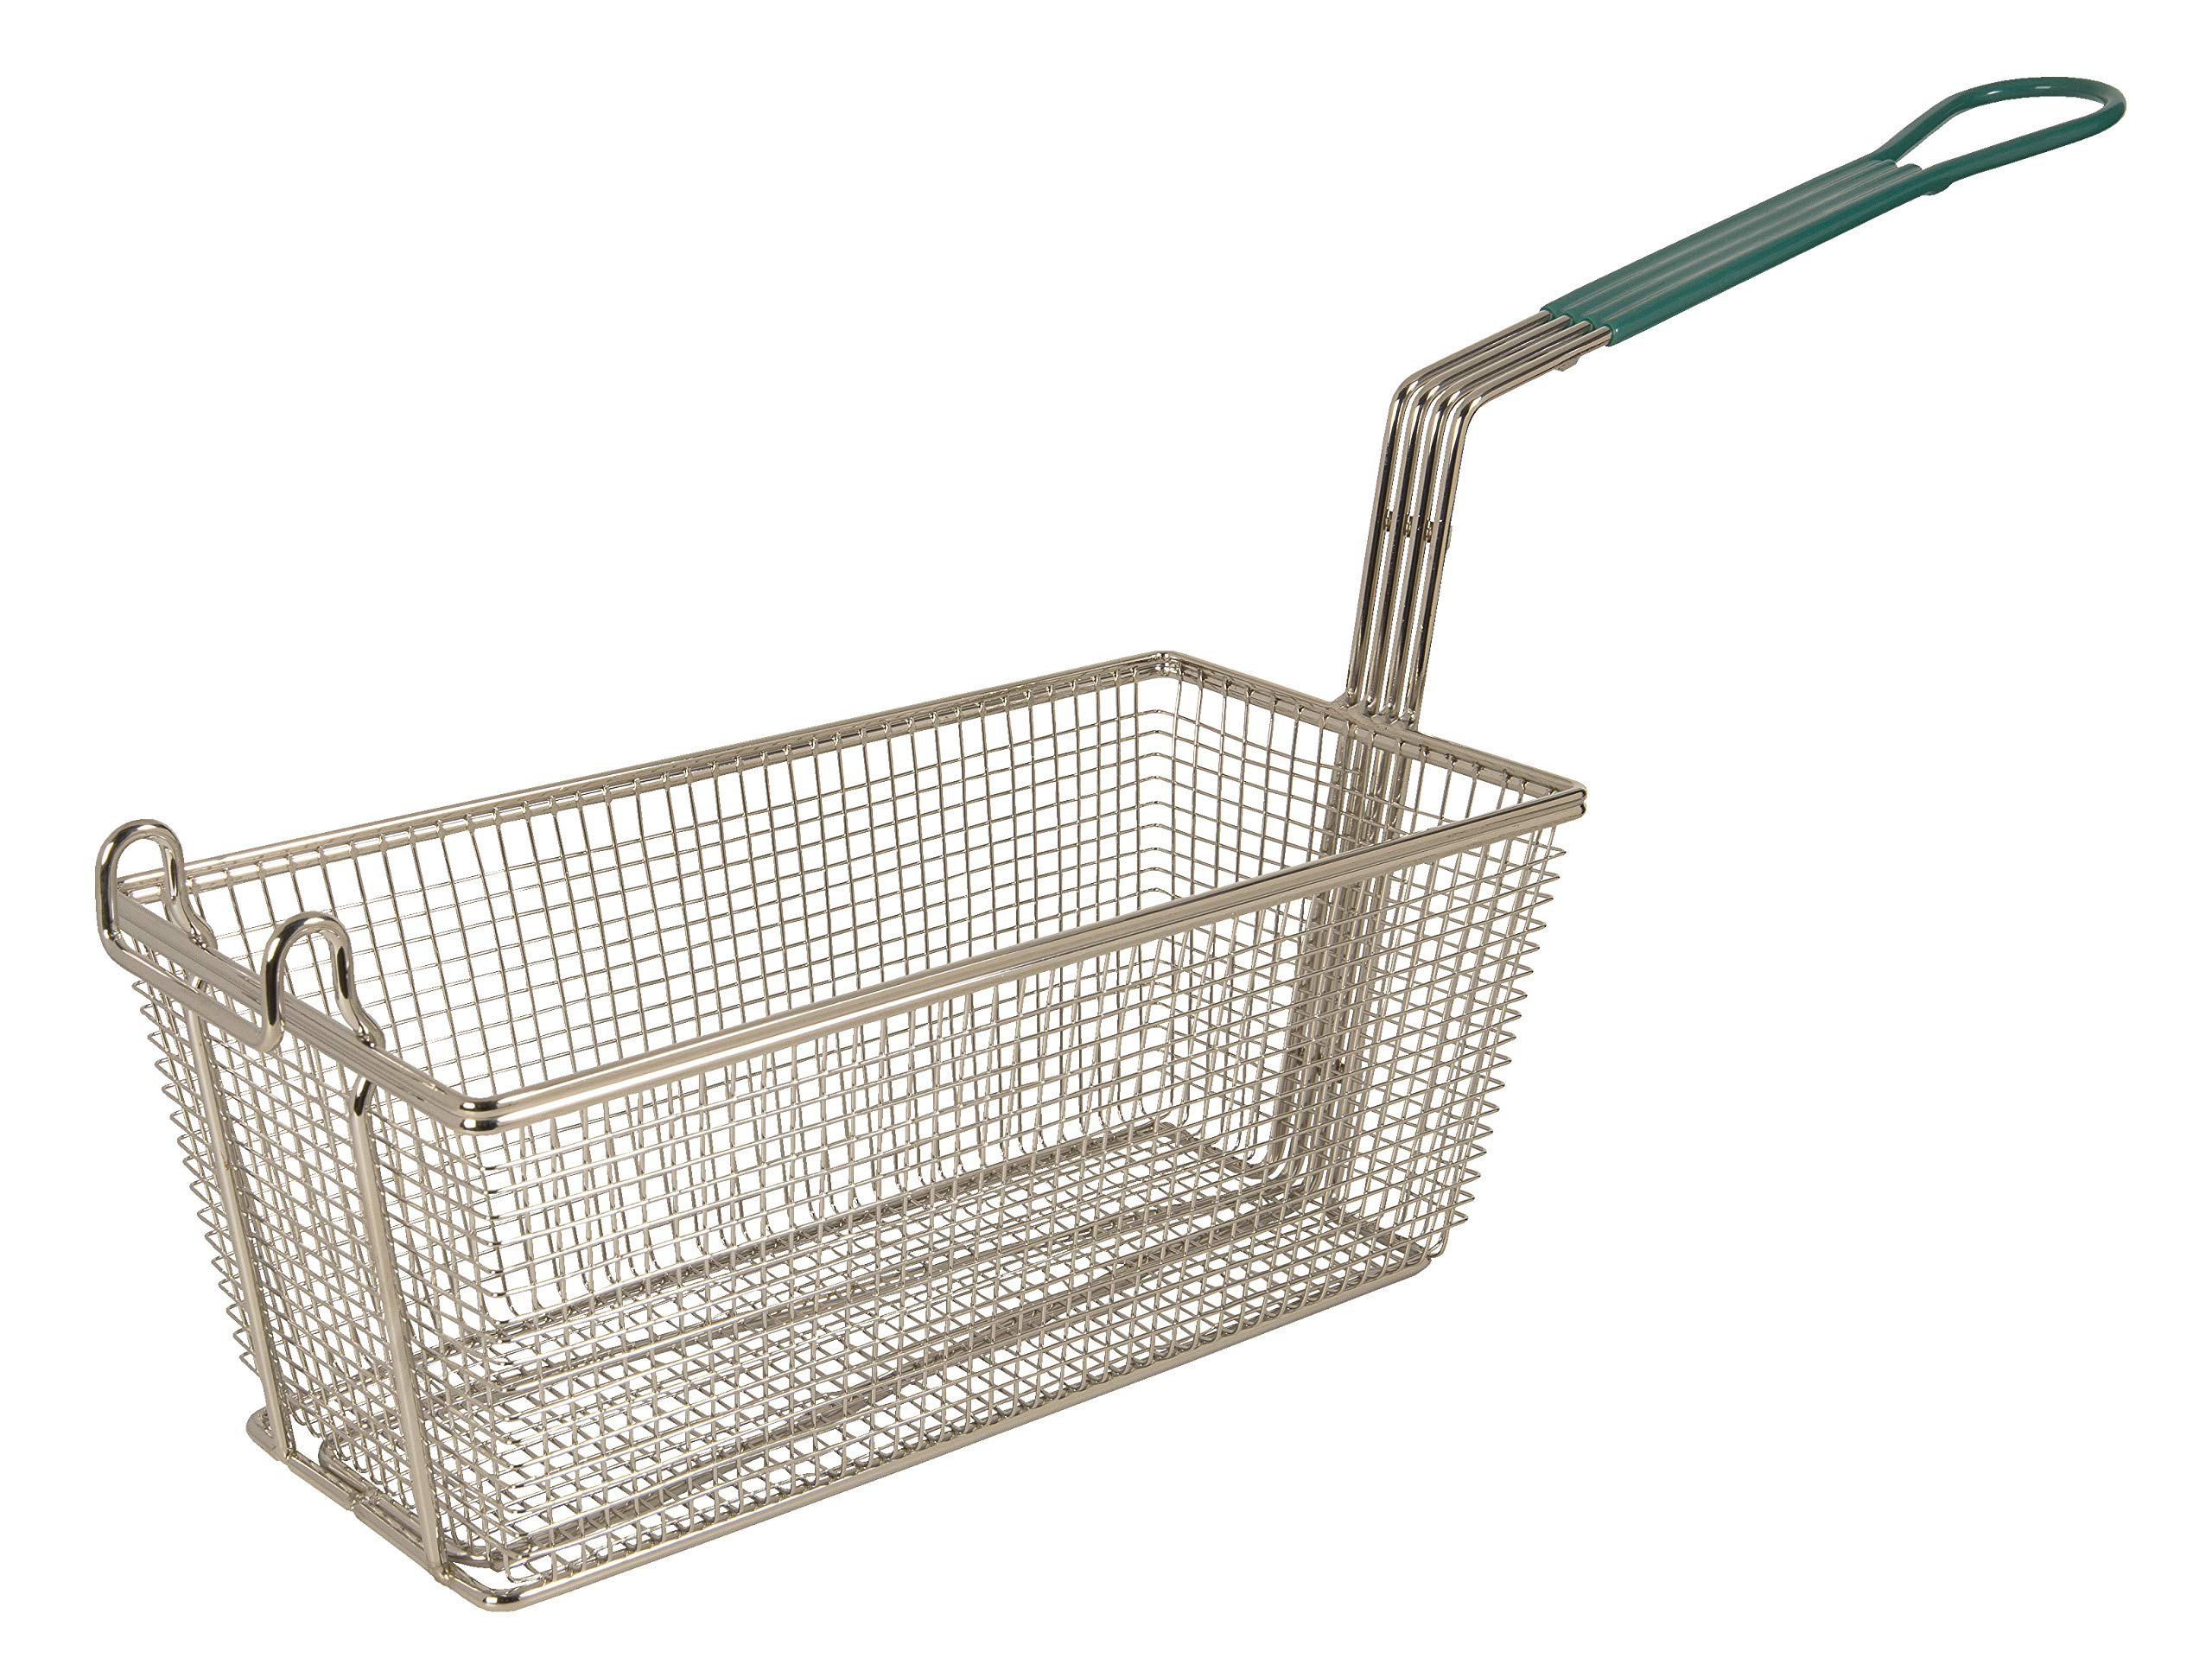 Update International (FB-126PH) 12 7/8 x 6 1/2'' Rectangular Wire Fry Basket